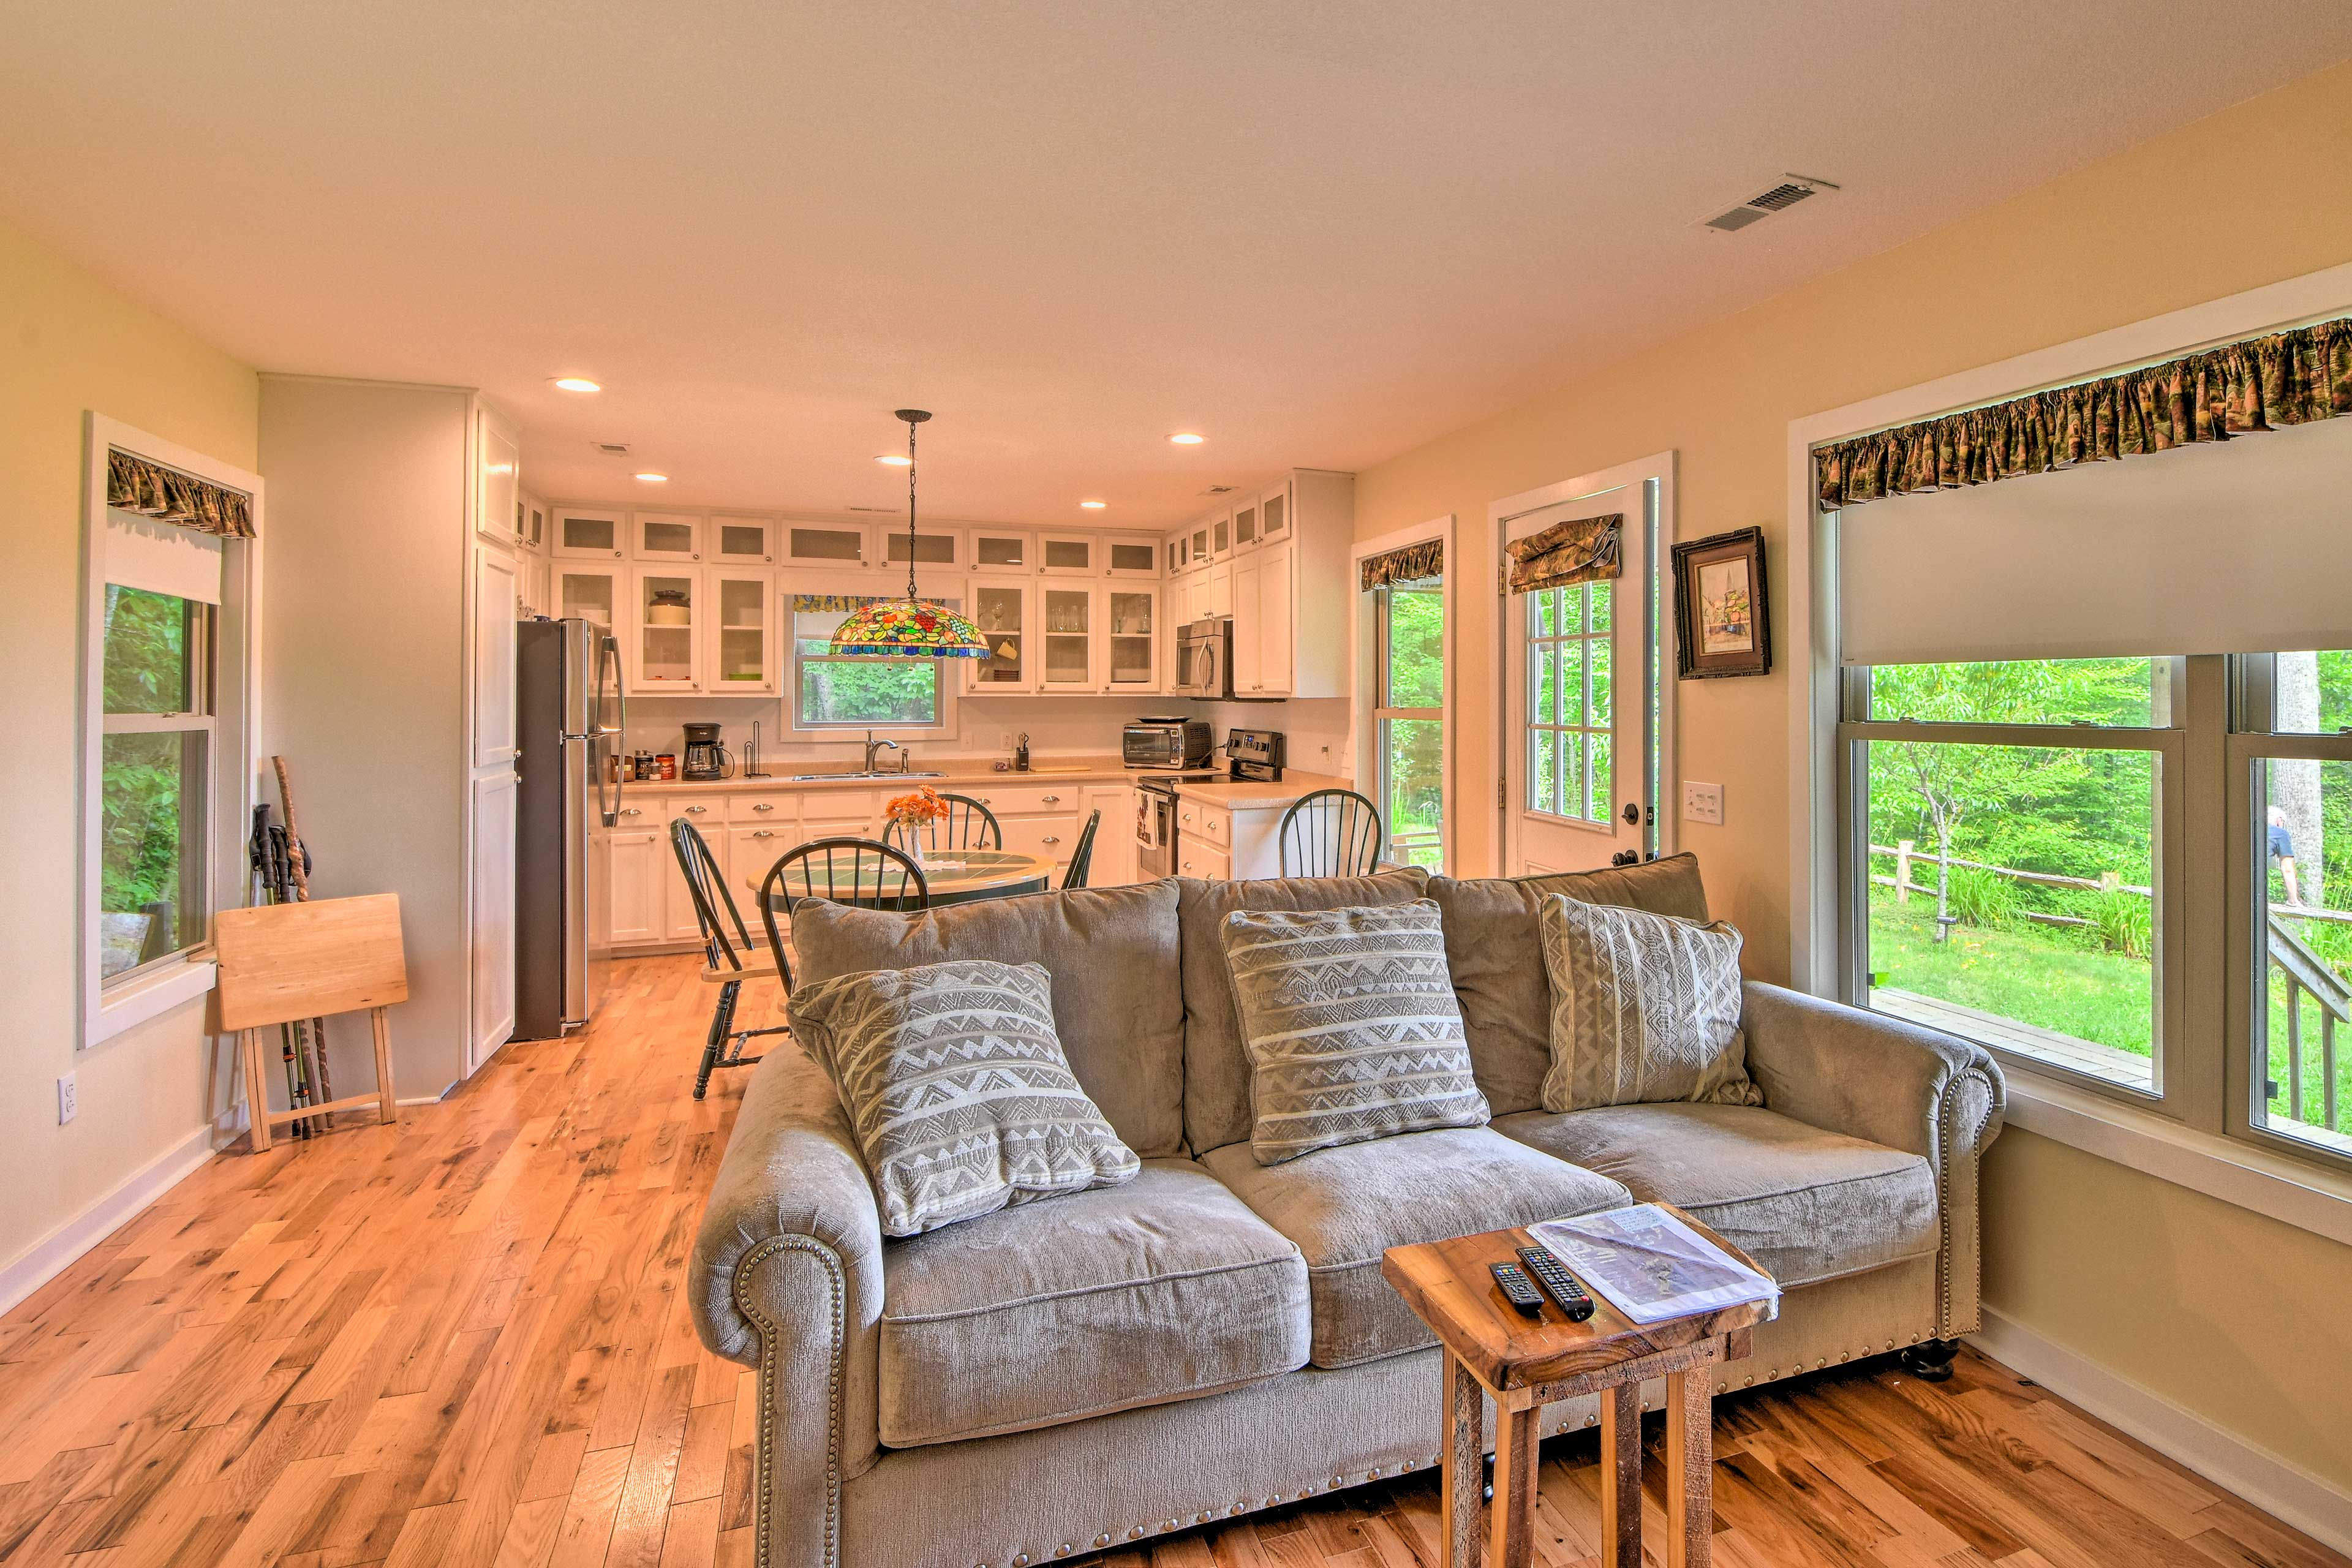 The open floor plan allows the conversations to keep flowing.